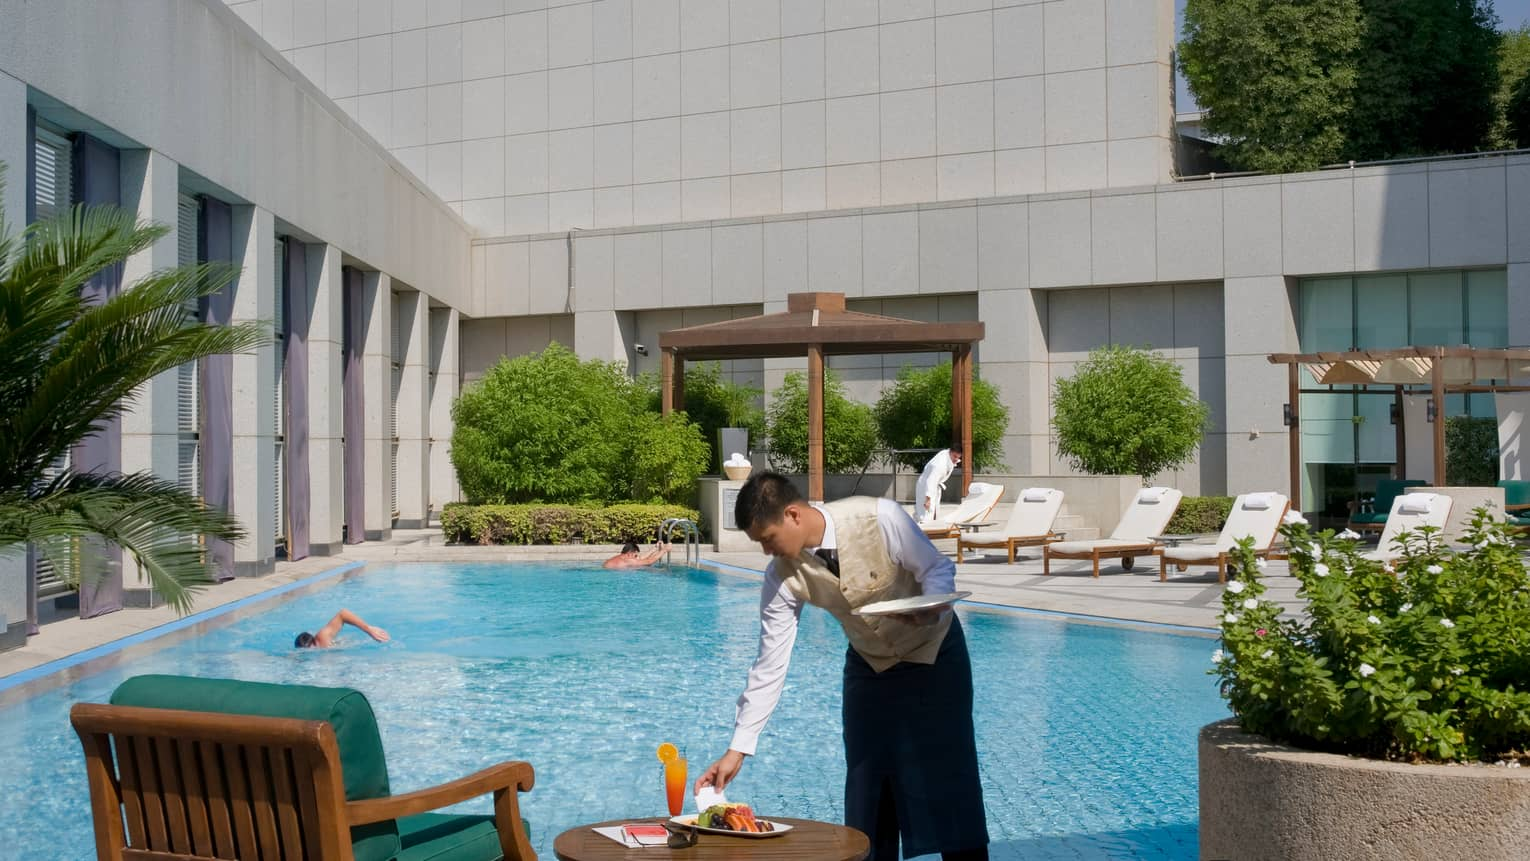 Server sets plate of fresh fruit next to cocktail on table beside sunny outdoor swimming pool where man swims laps